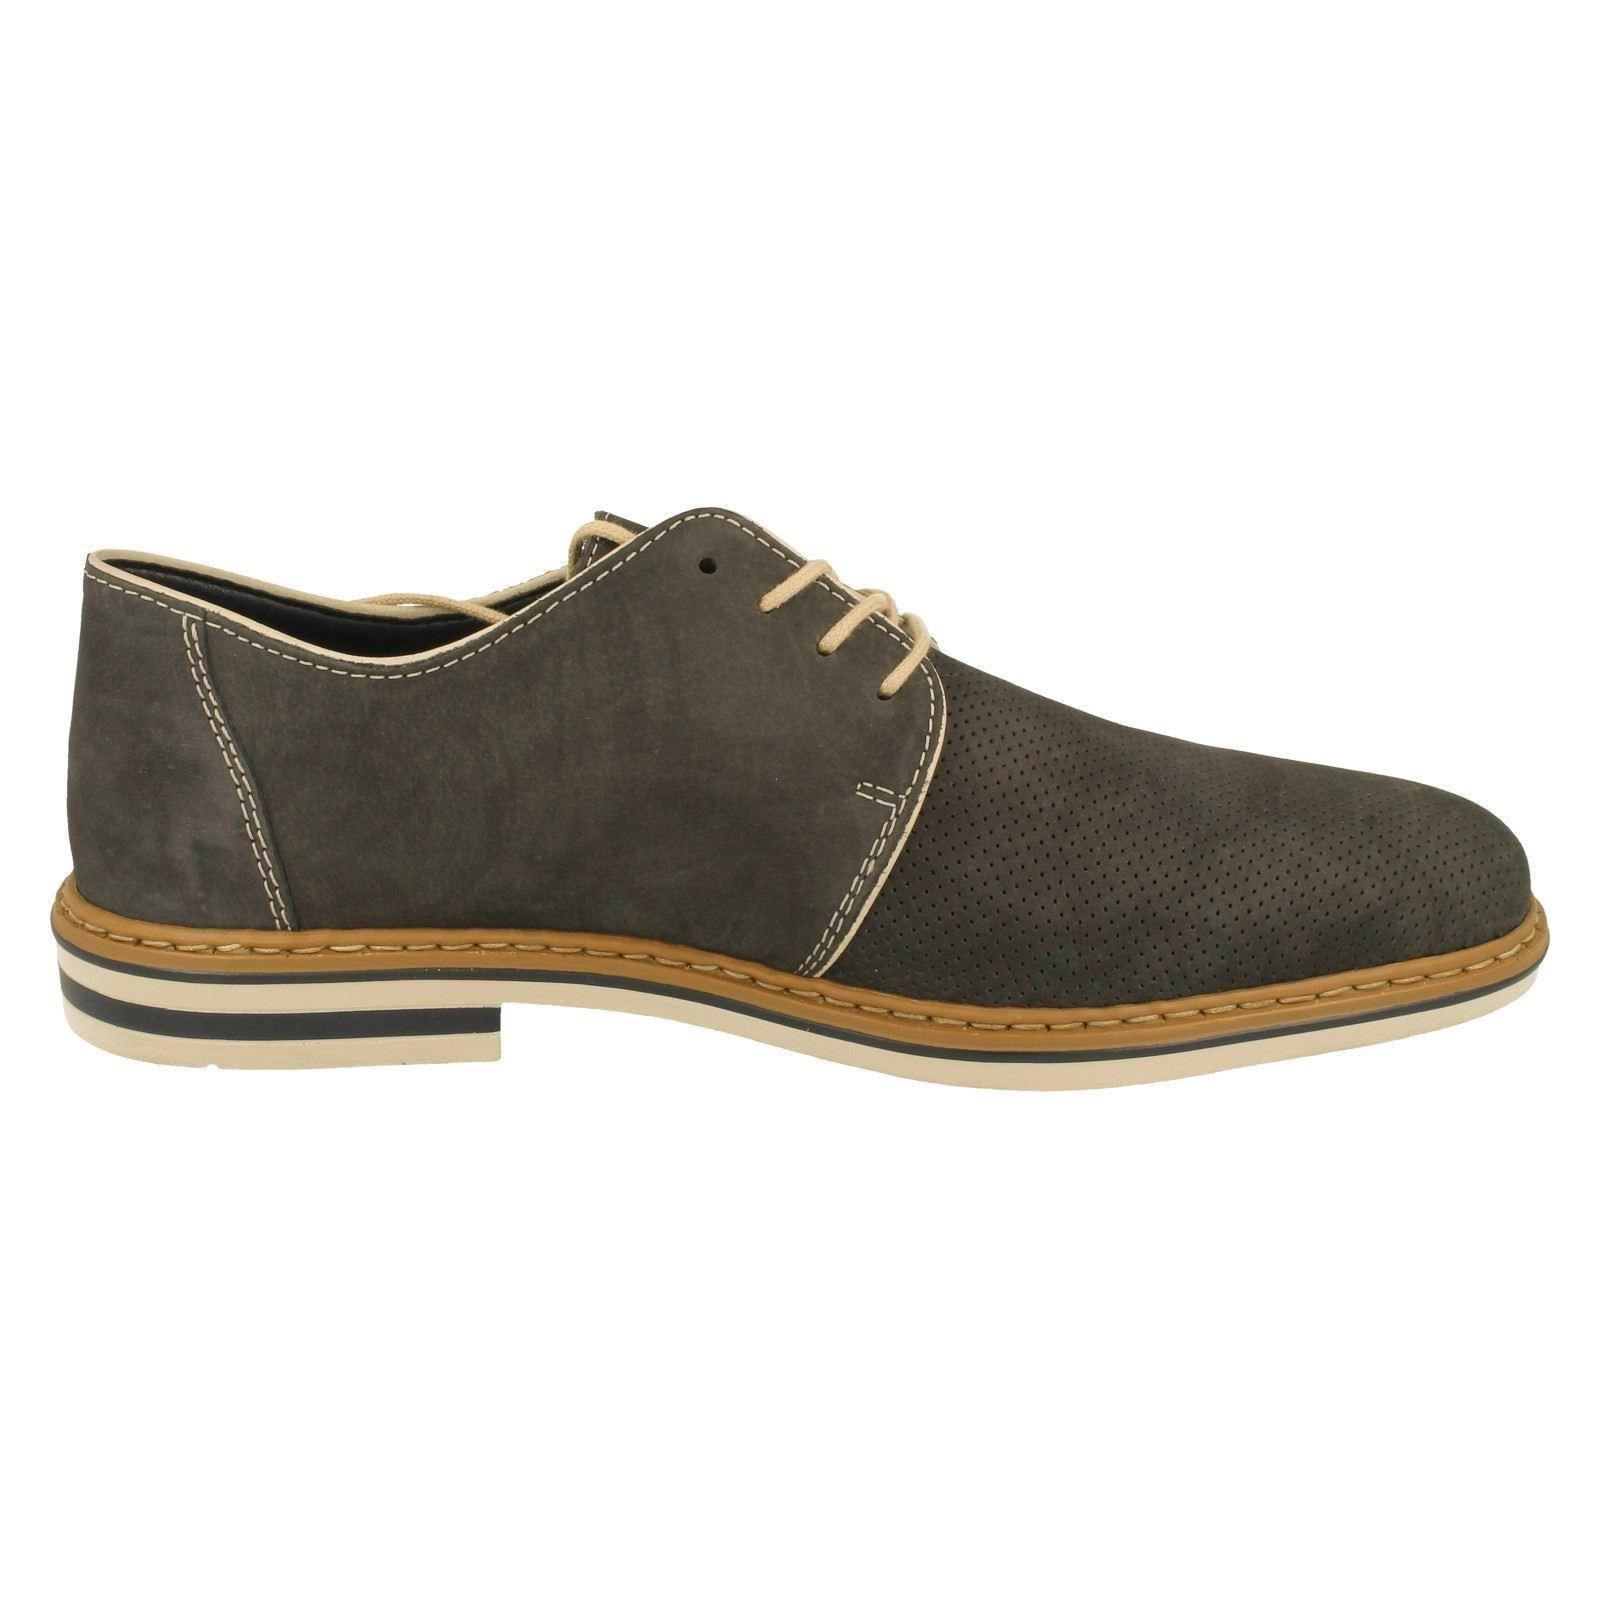 Mens Rieker Shoes The Style B1435-W